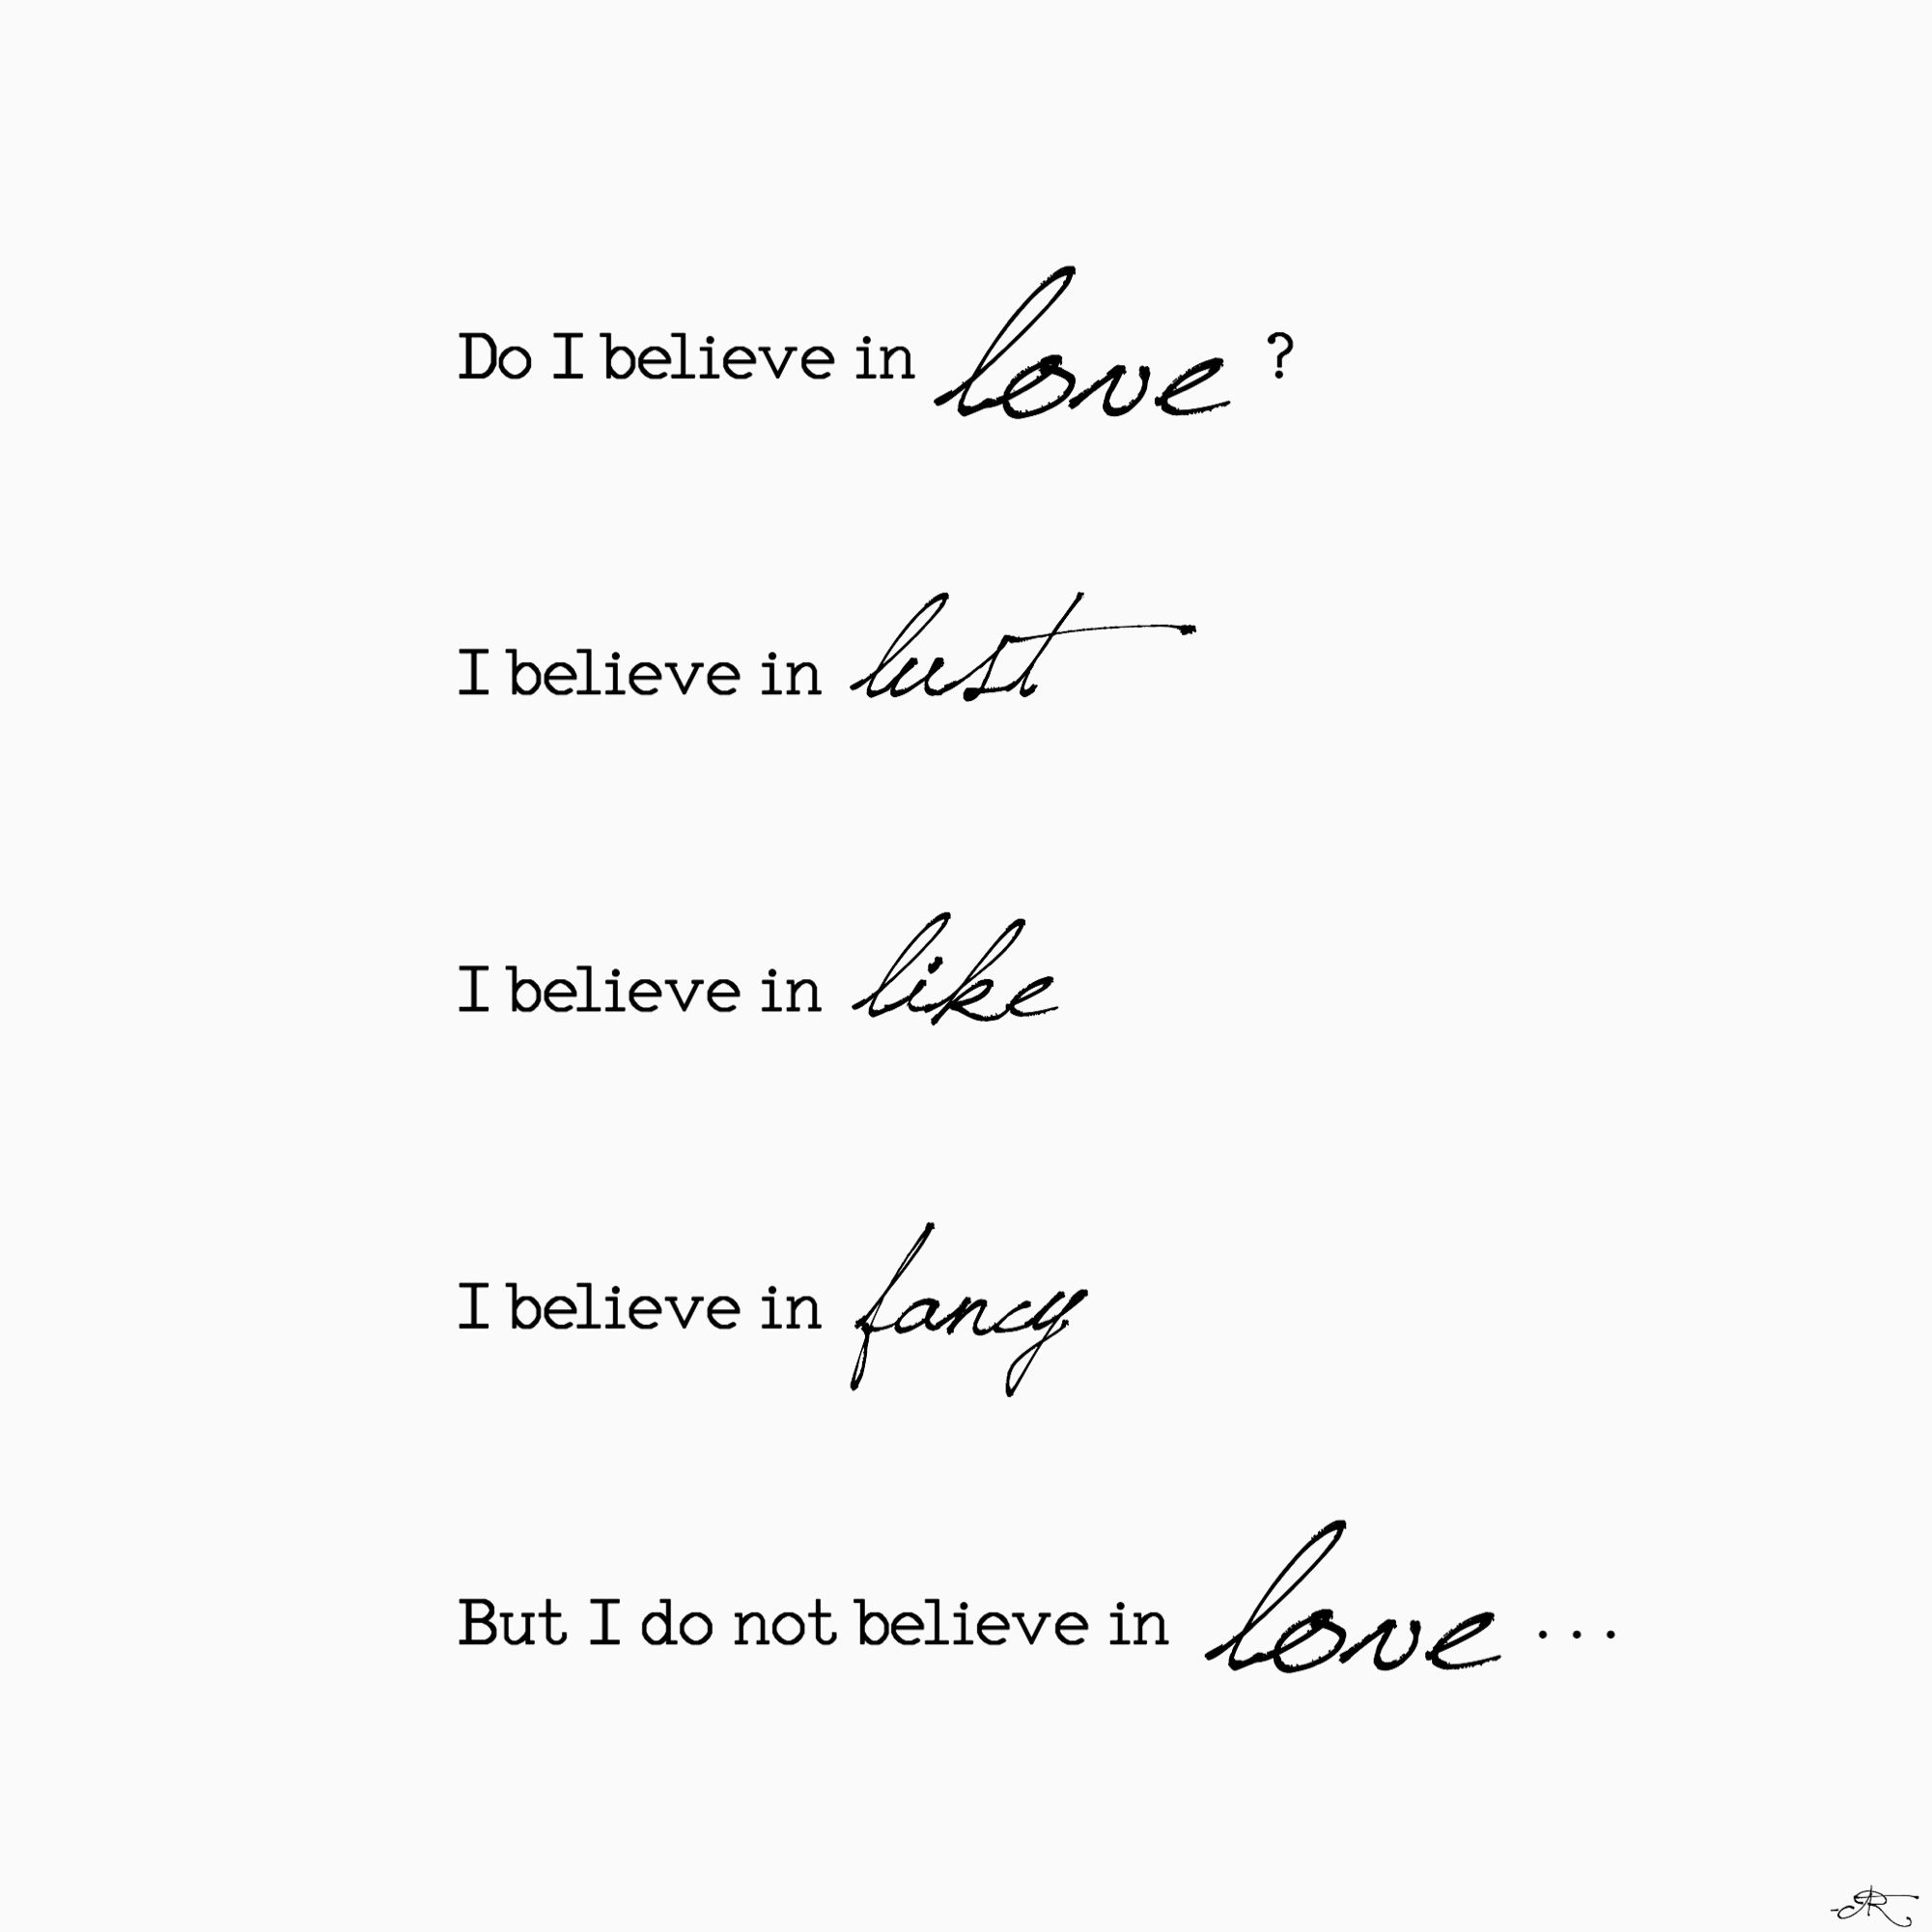 Believe In Love Quotes Do I Believe In Love I Believe In Lust I Believe In Like I